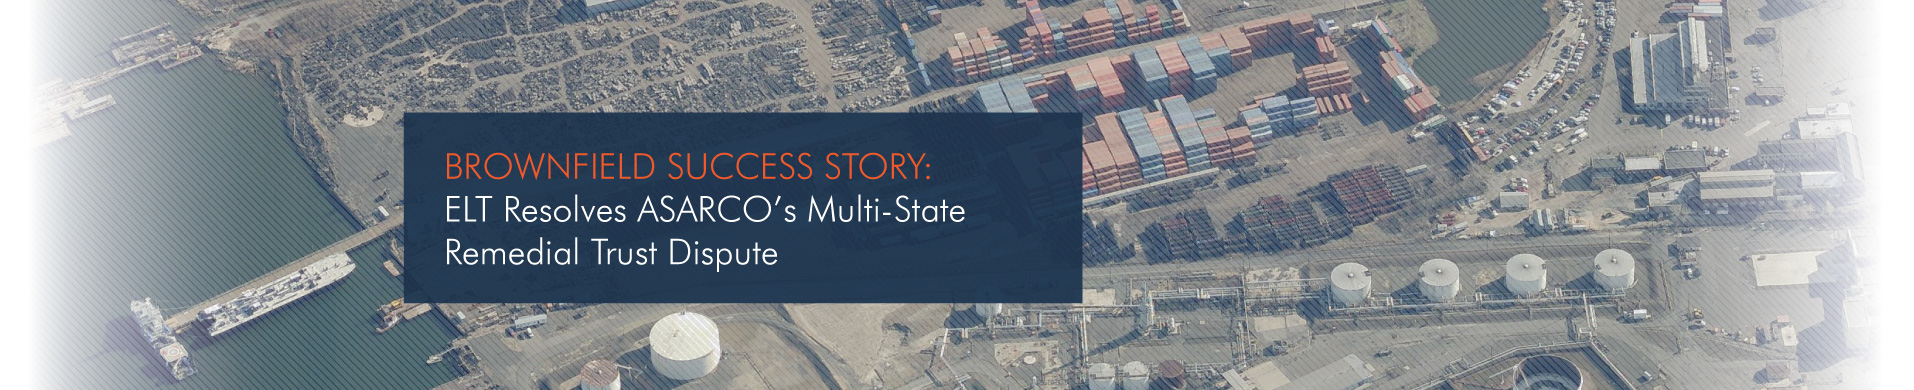 Brownfield Success Story: ASARCO